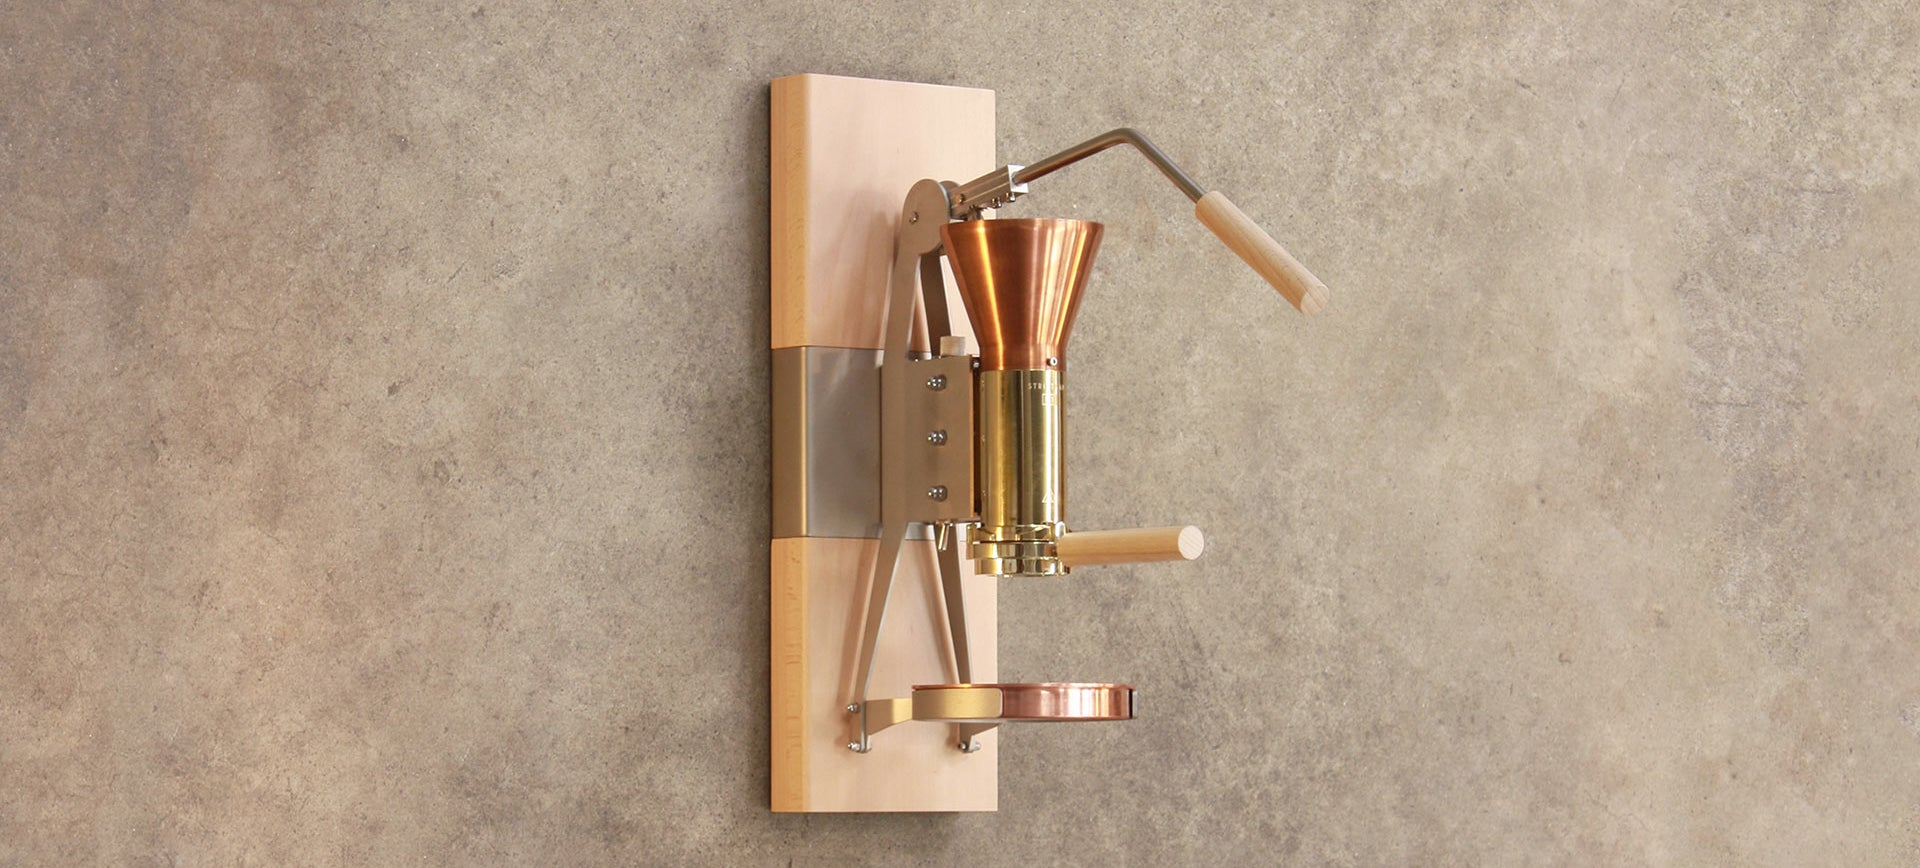 This Wall-Mounted Espresso Machine Is Dripping With Good Looks